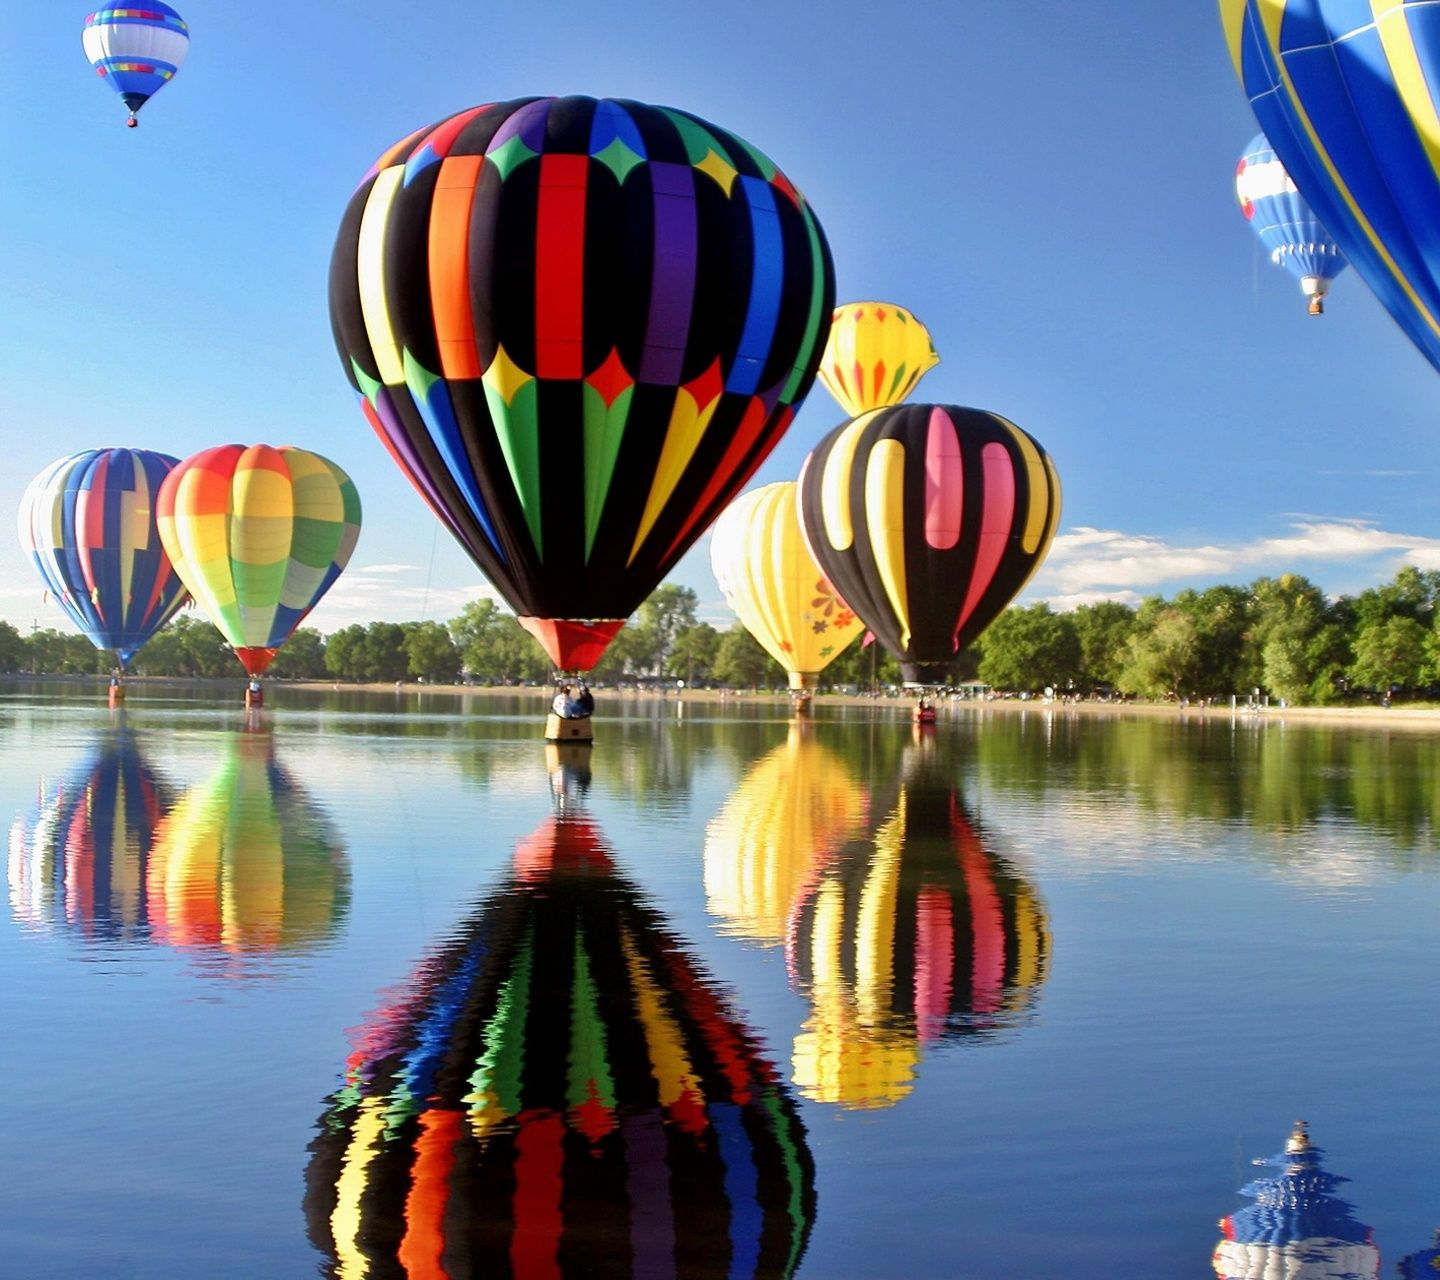 Download · Balloons Hd,1440x1280,1280x1440,free,hot,mobile phone wallpapers ,www